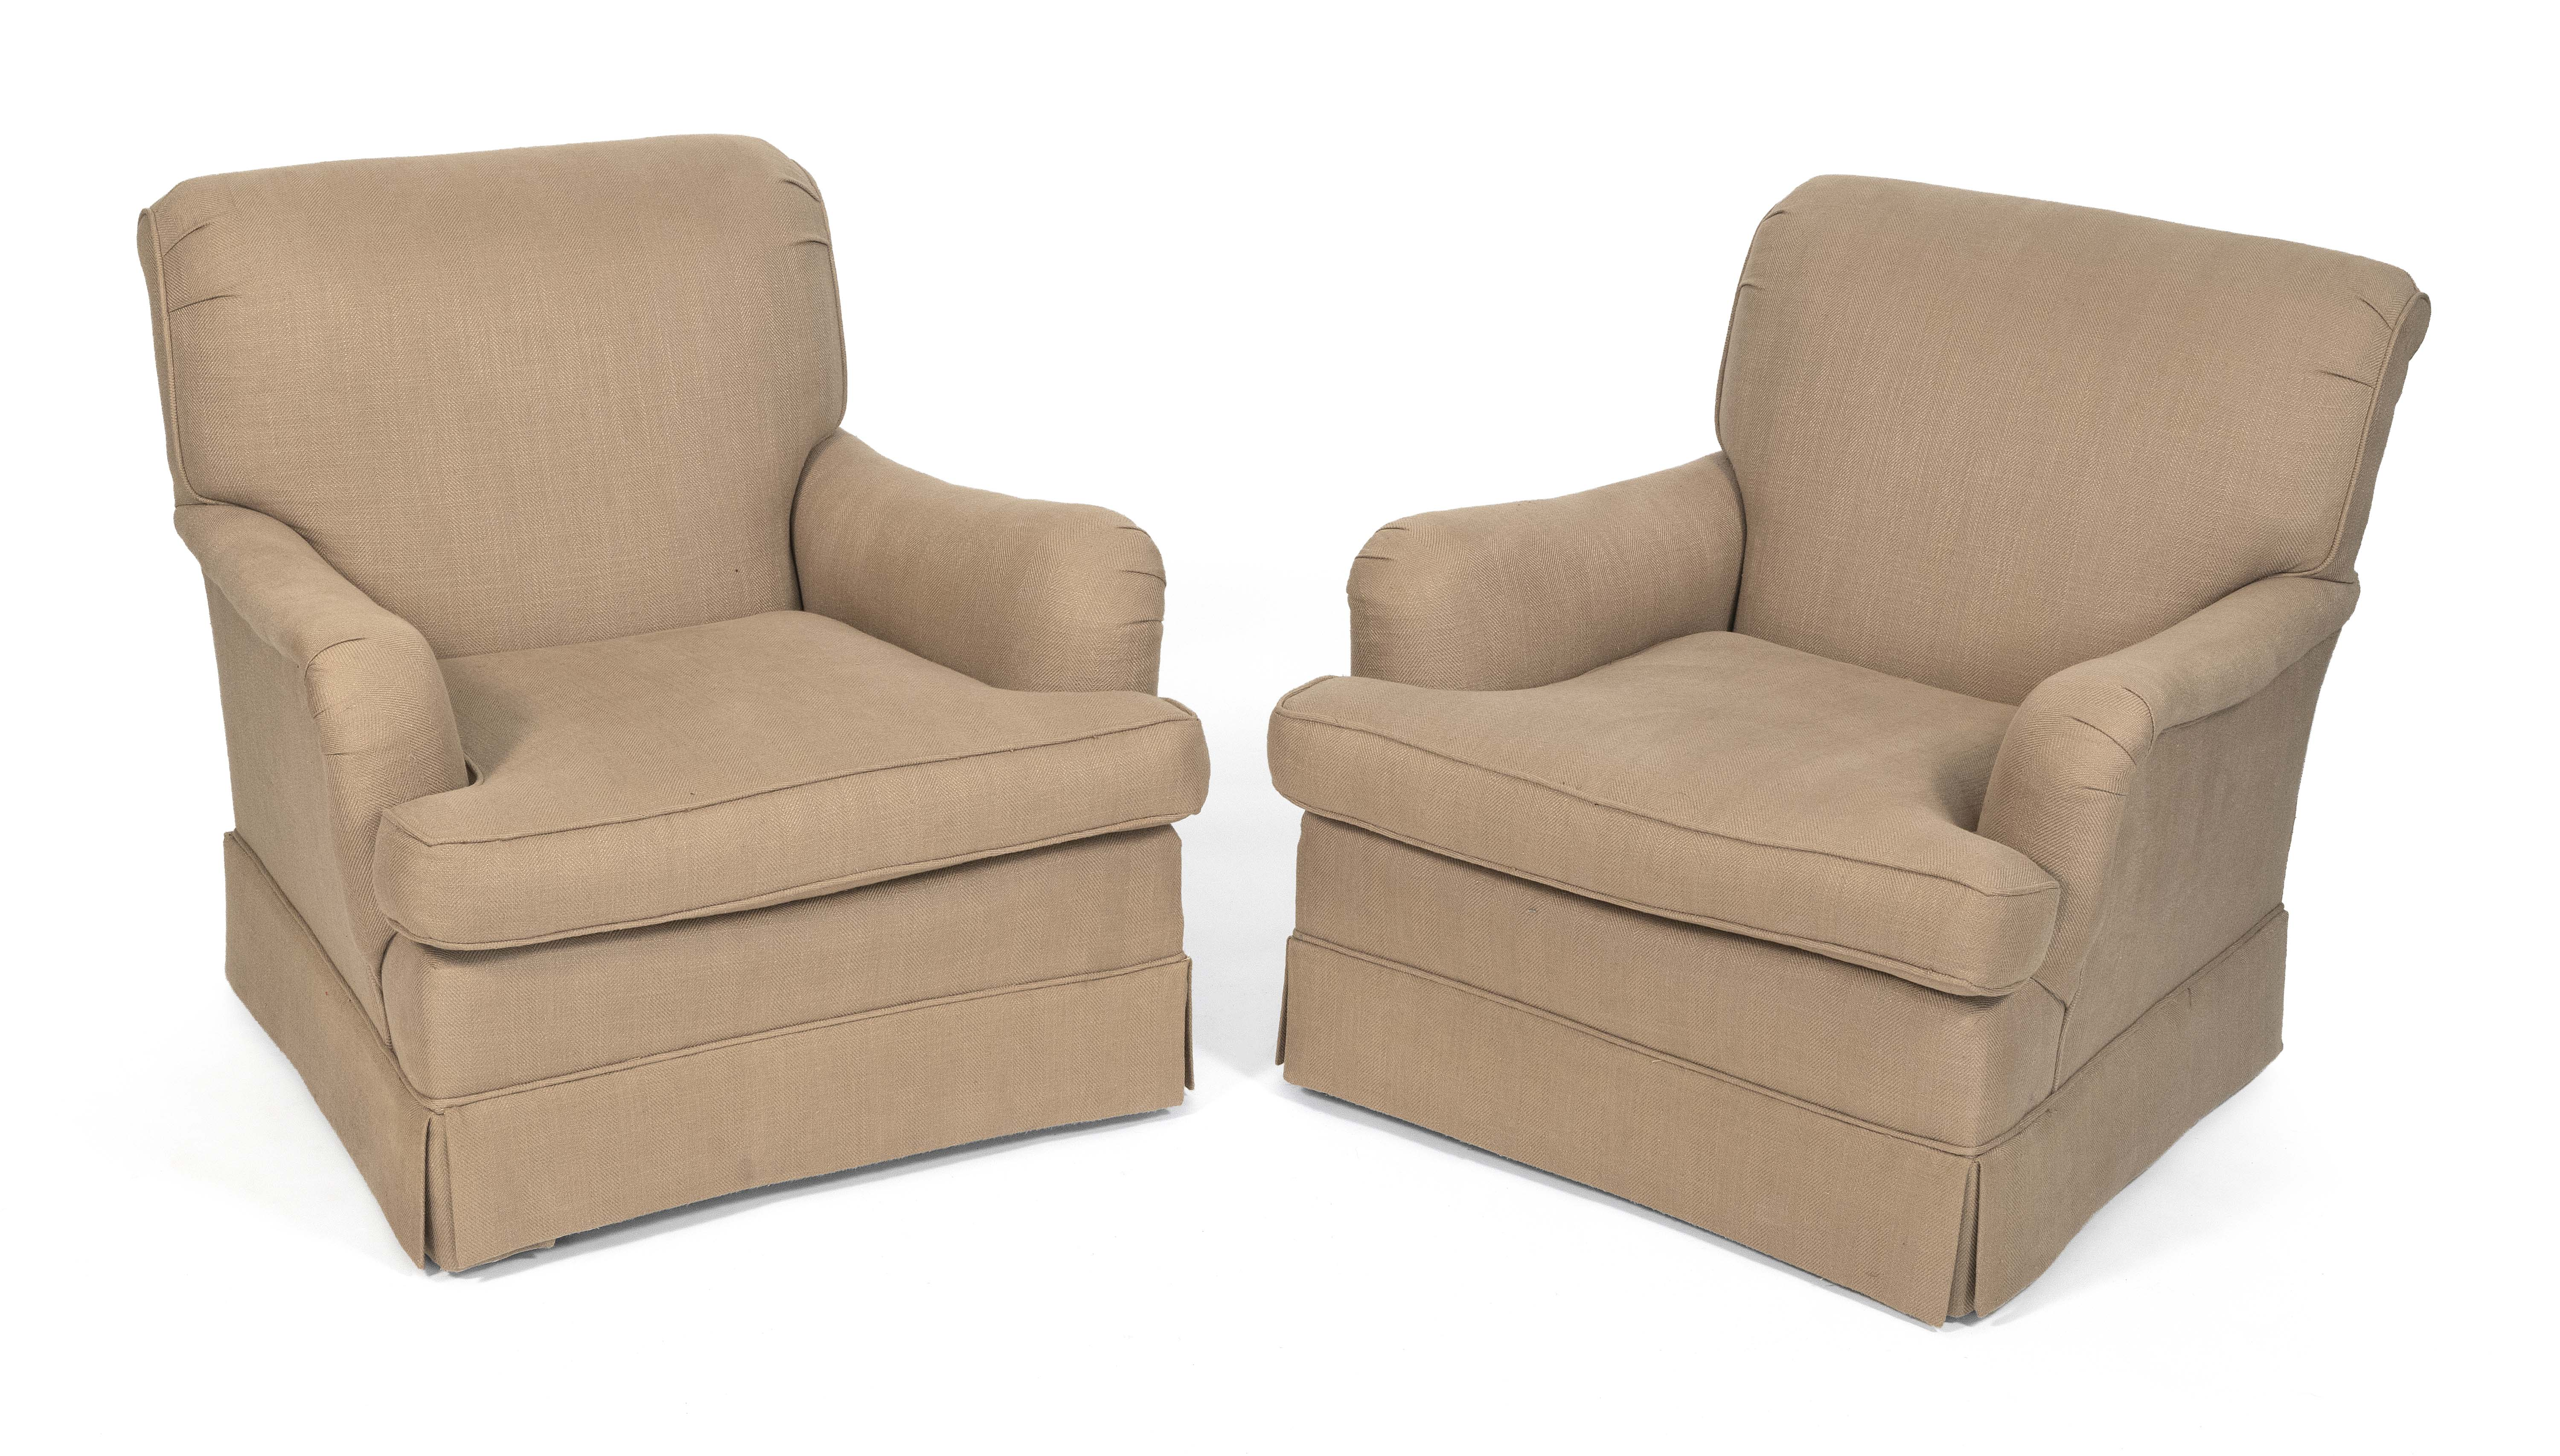 """PAIR OF OVERSTUFFED ARMCHAIRS Contemporary Back heights 32.5"""". Seat heights 17""""."""